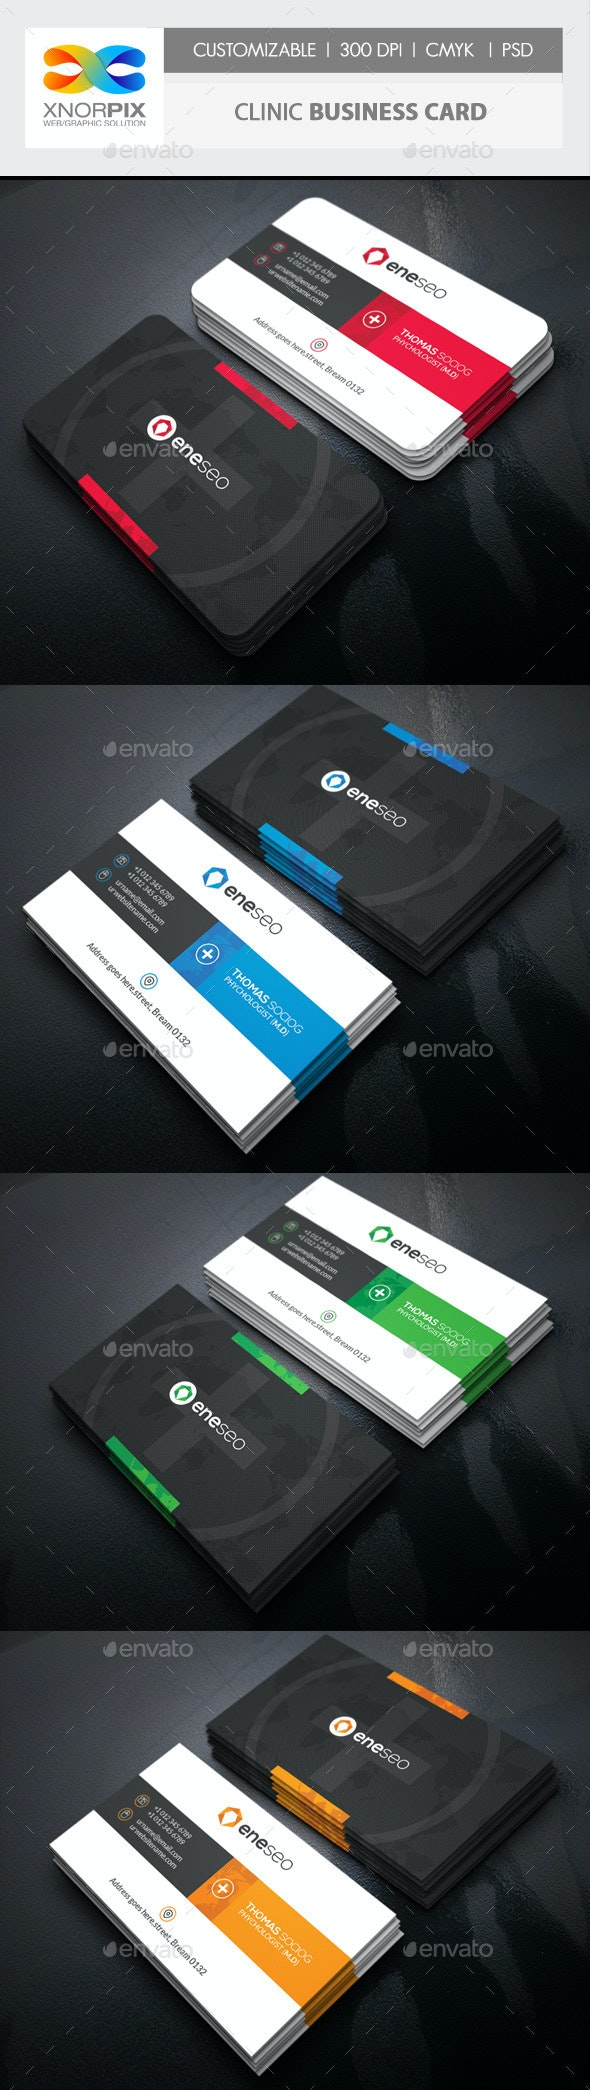 Clinic Business Card - Corporate Business Cards